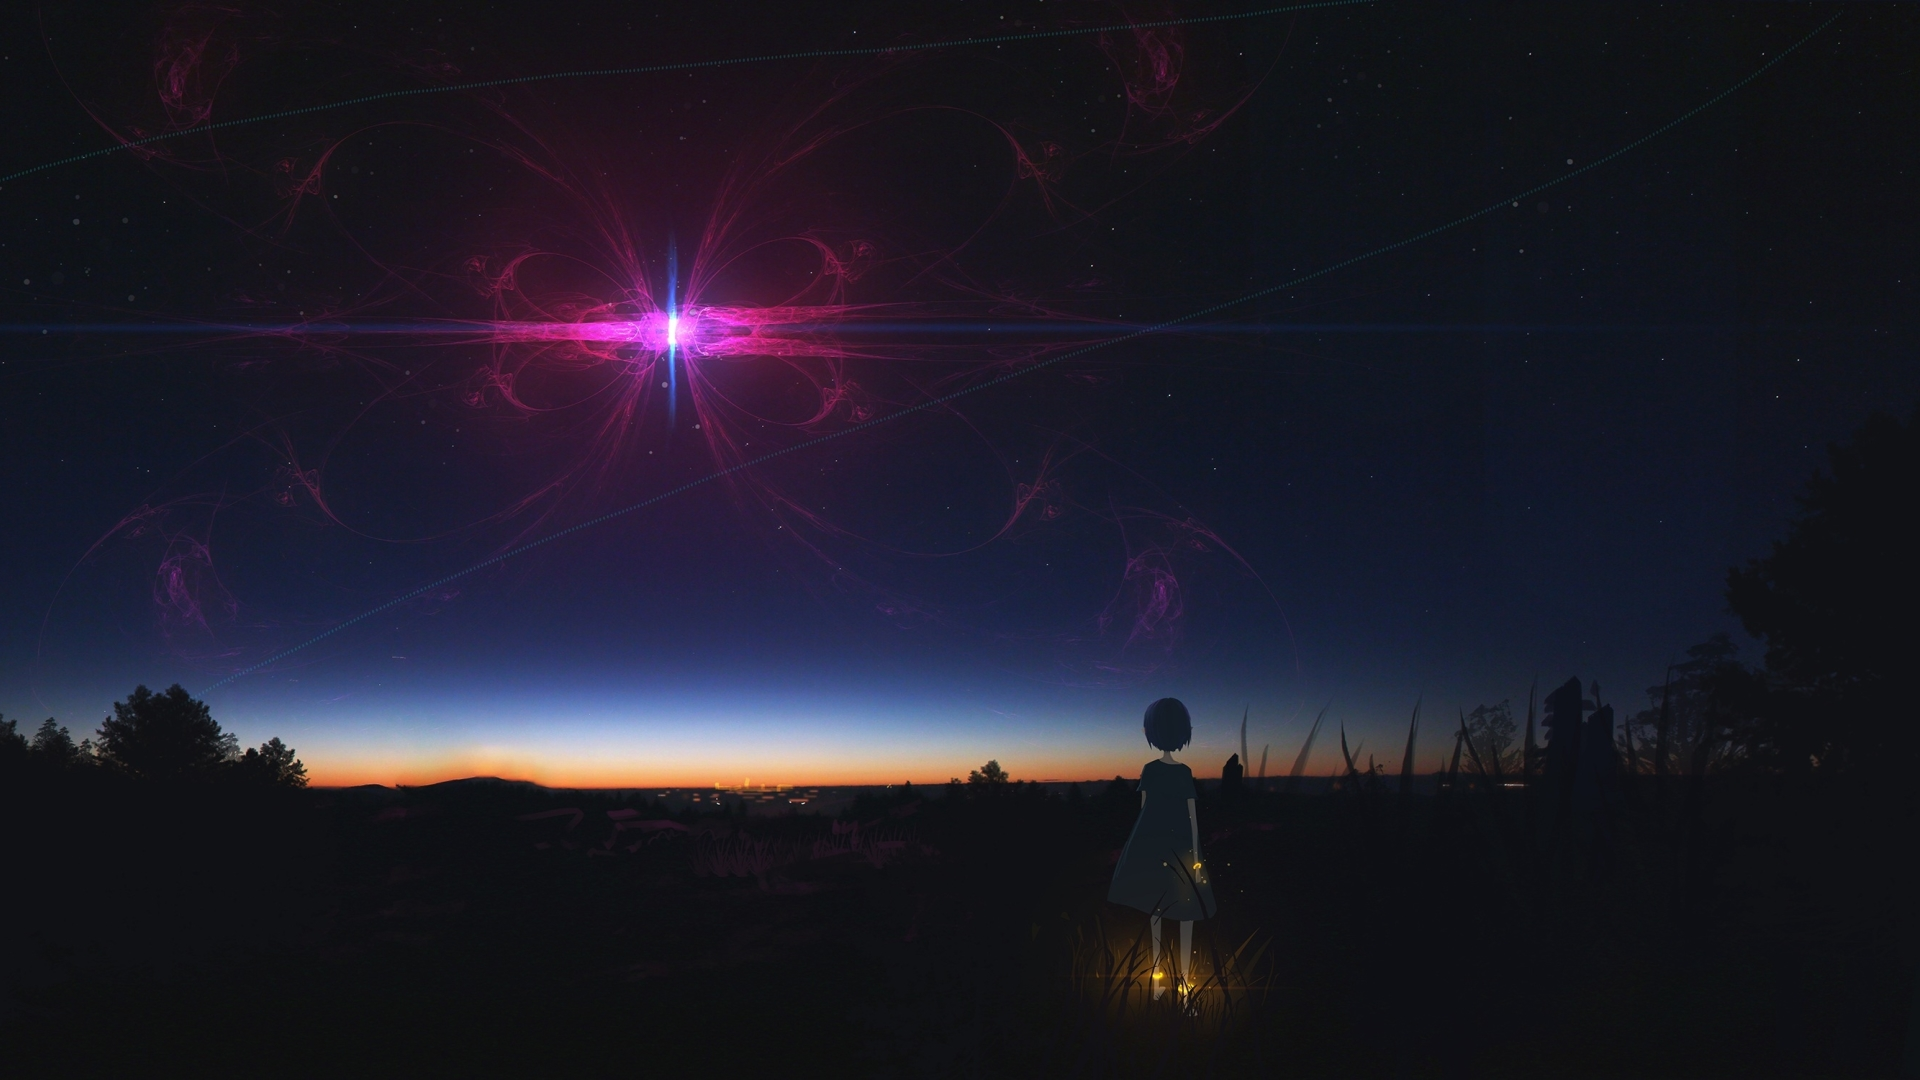 640x960 Anime Girl Staring At Night Sky Iphone 4 Iphone 4s Wallpaper Hd Anime 4k Wallpapers Images Photos And Background